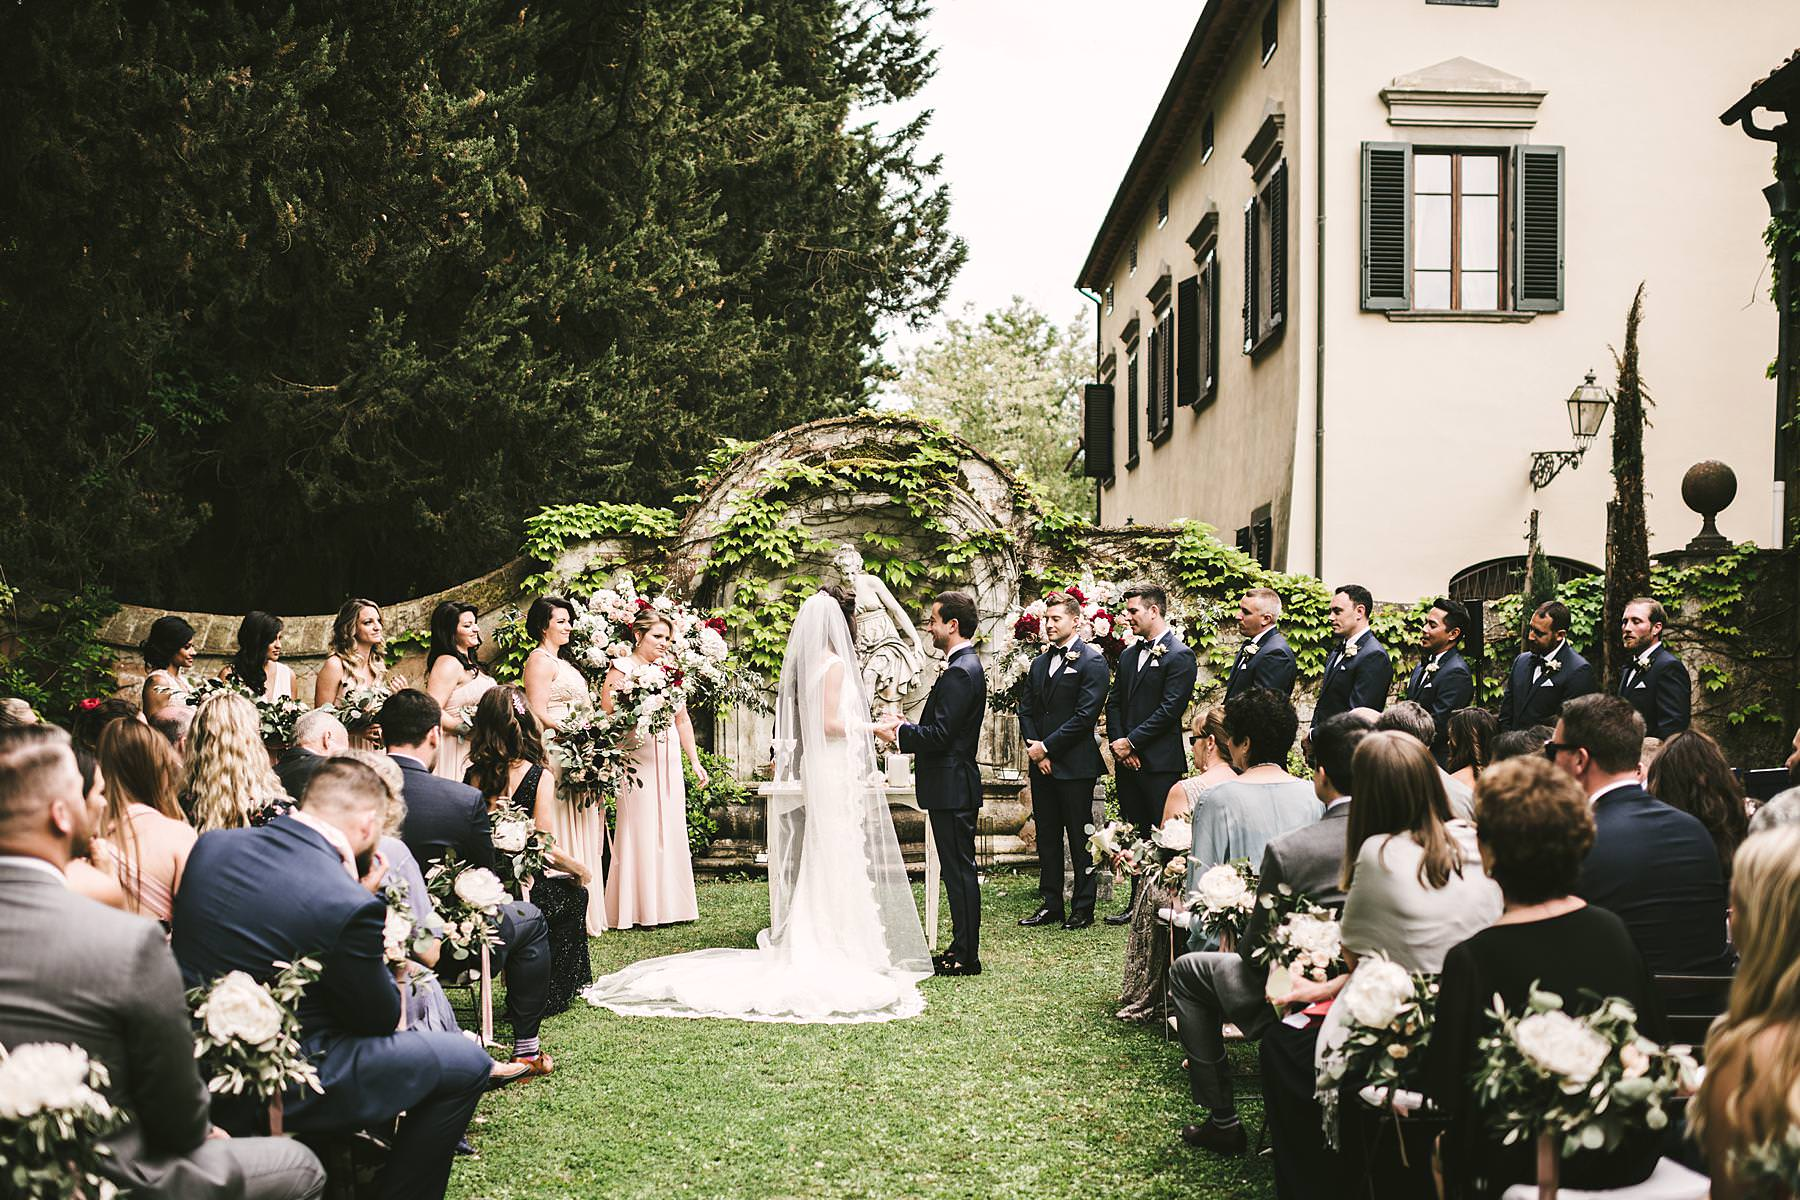 Outdoor destination wedding in Italy at historic estate of Villa La Selva Wine Resort located in the countryside of Tuscany